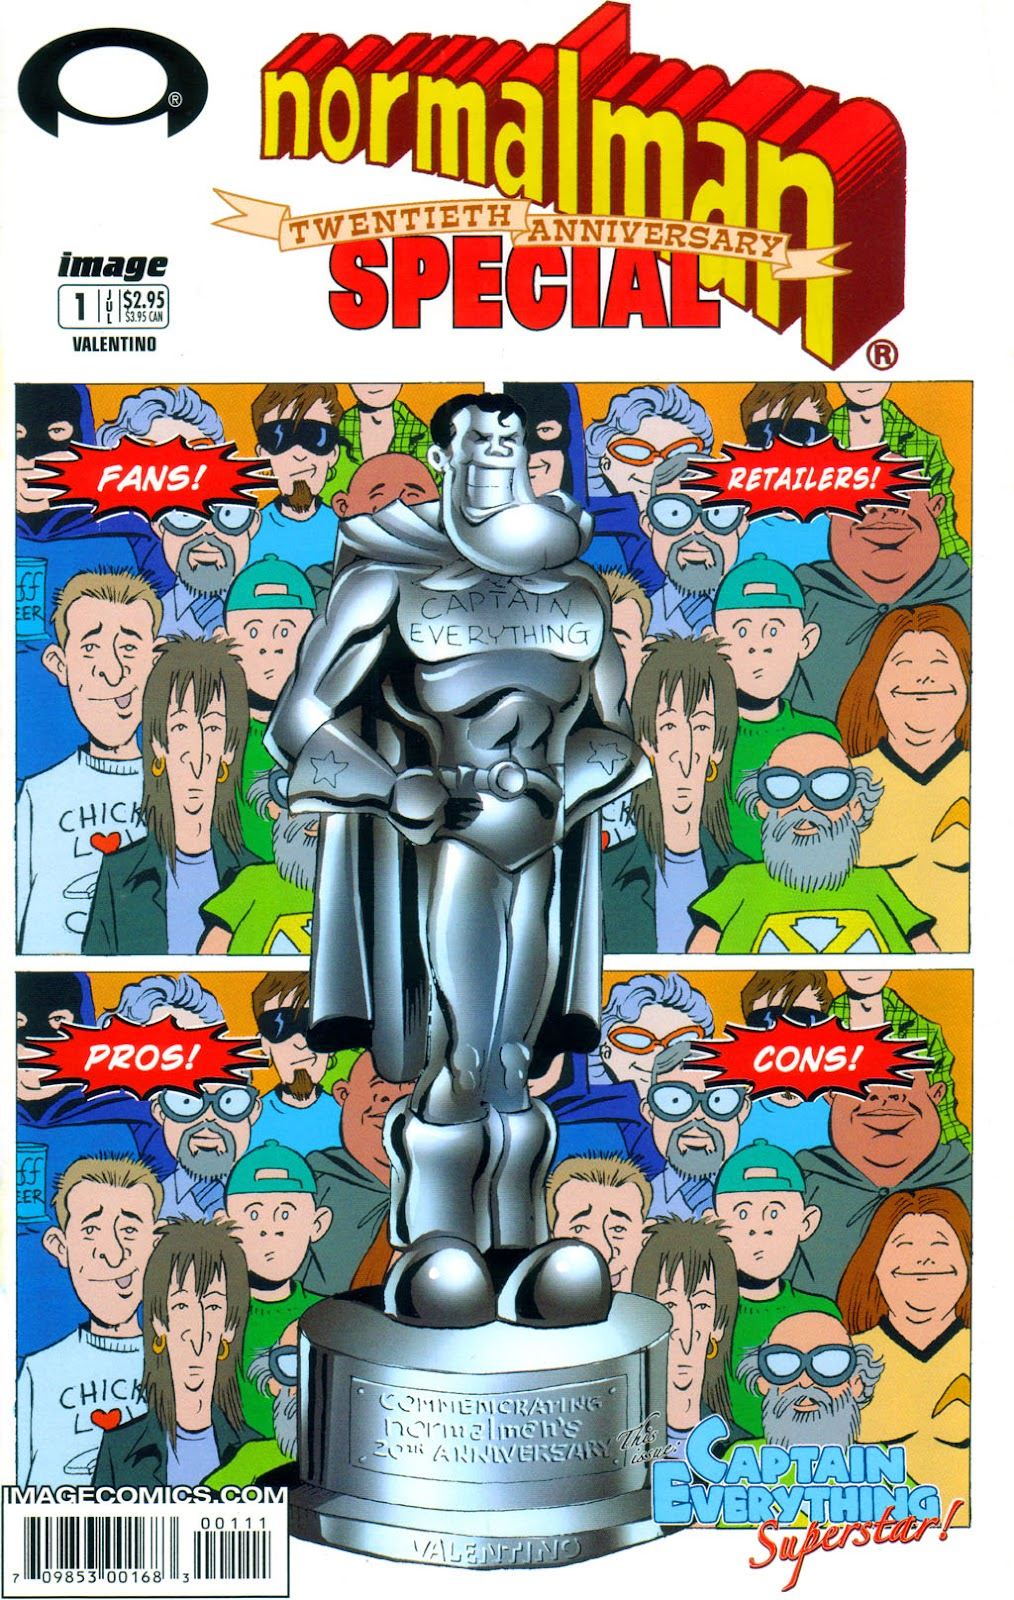 Read online Normalman 20th Anniversary Special comic -  Issue # Full - 1